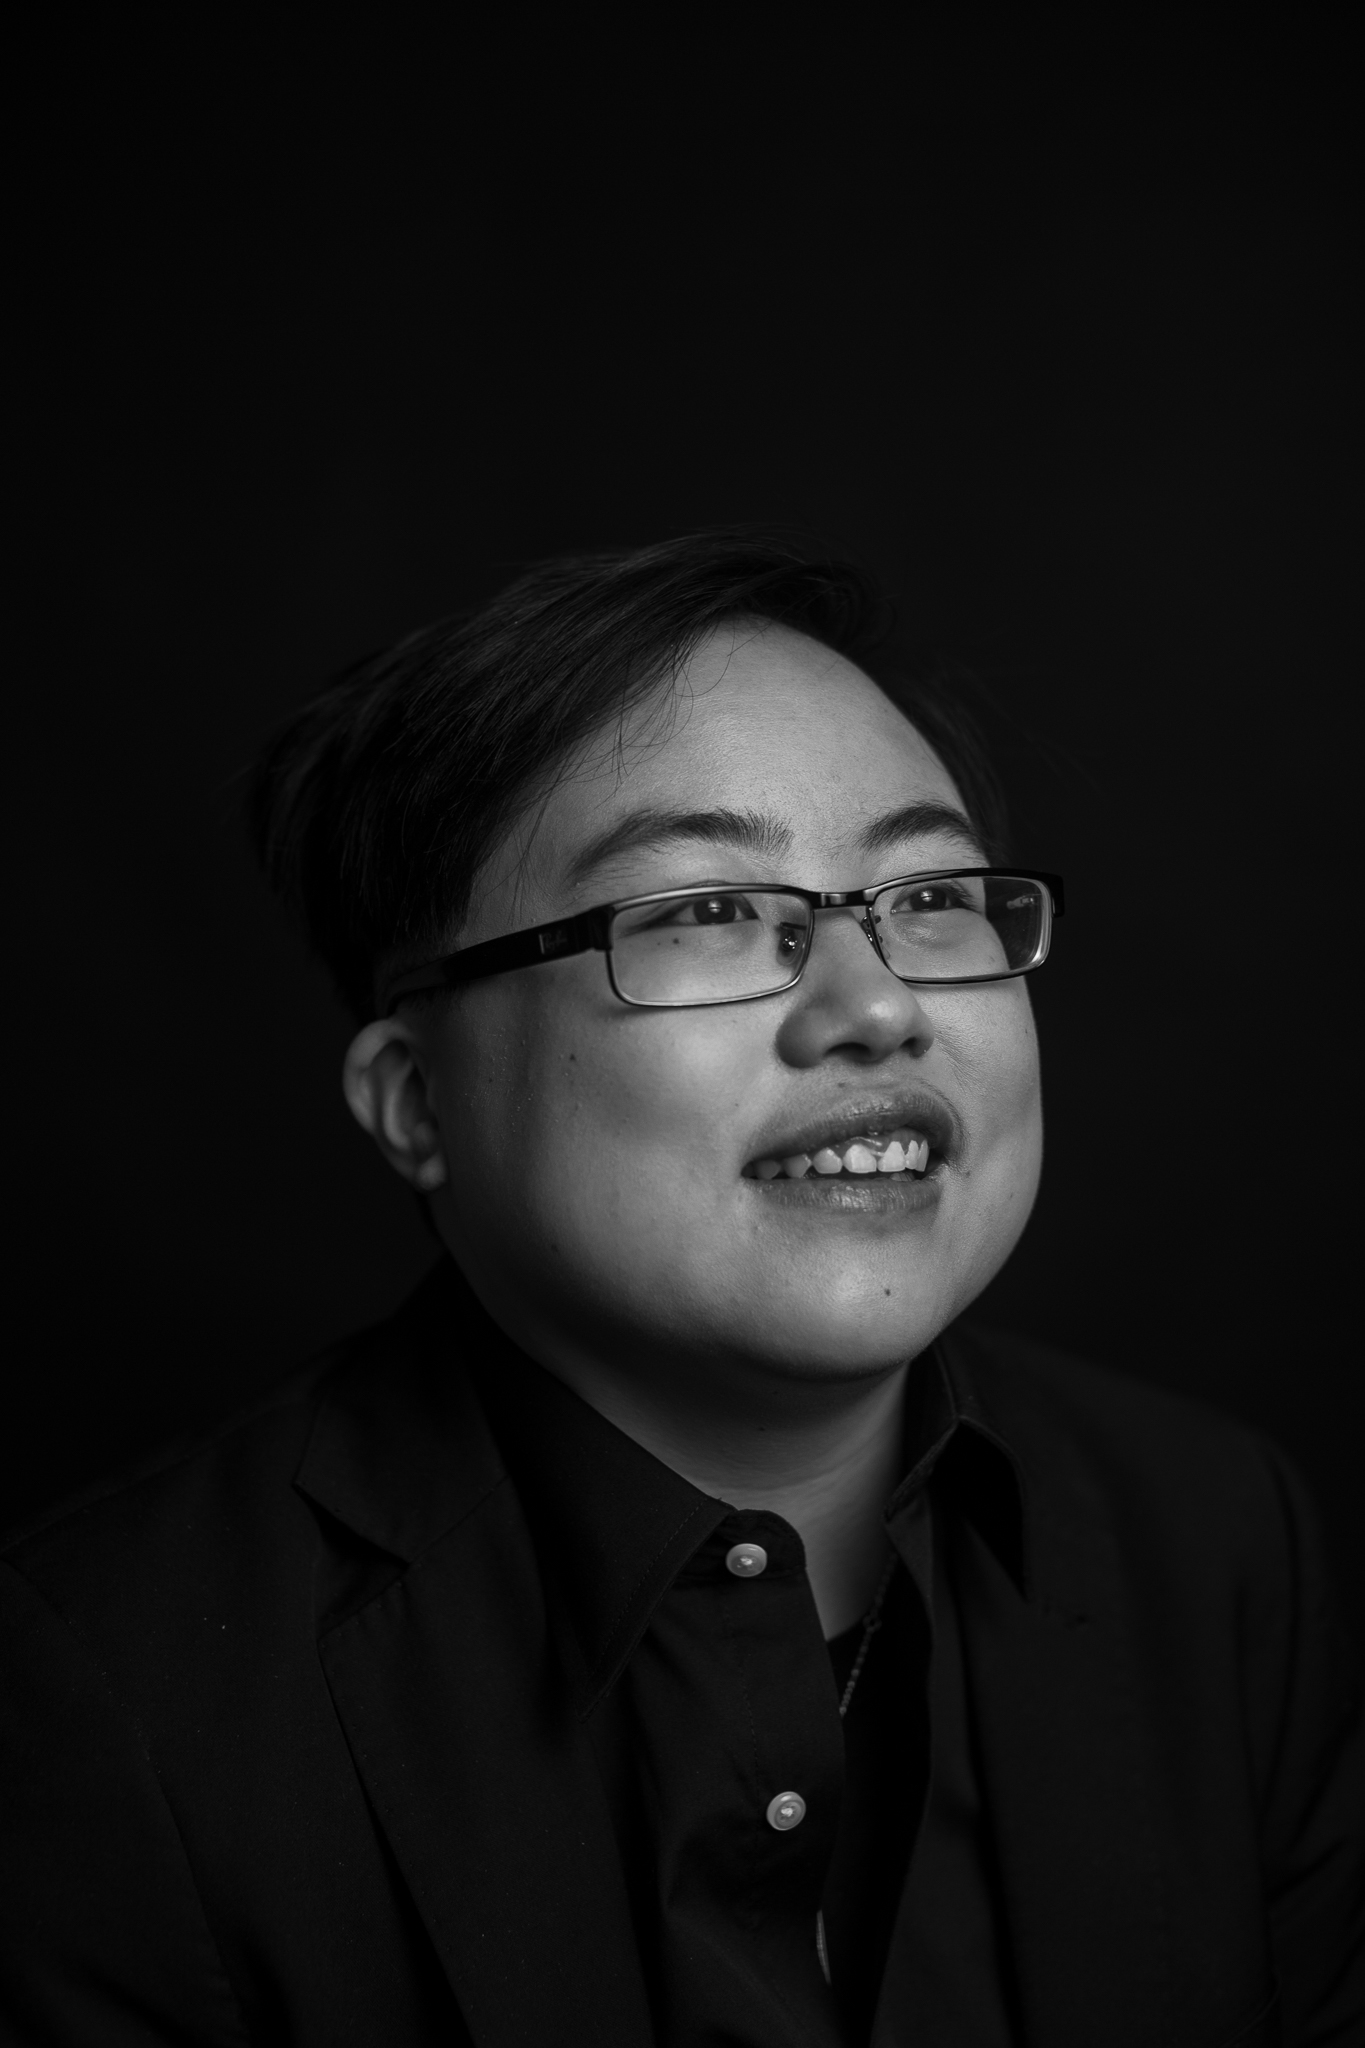 Young East Asian person with short black hair and glasses, smiling and laughing a little as they look to the side. They are wearing all black, and the photo is black and white.